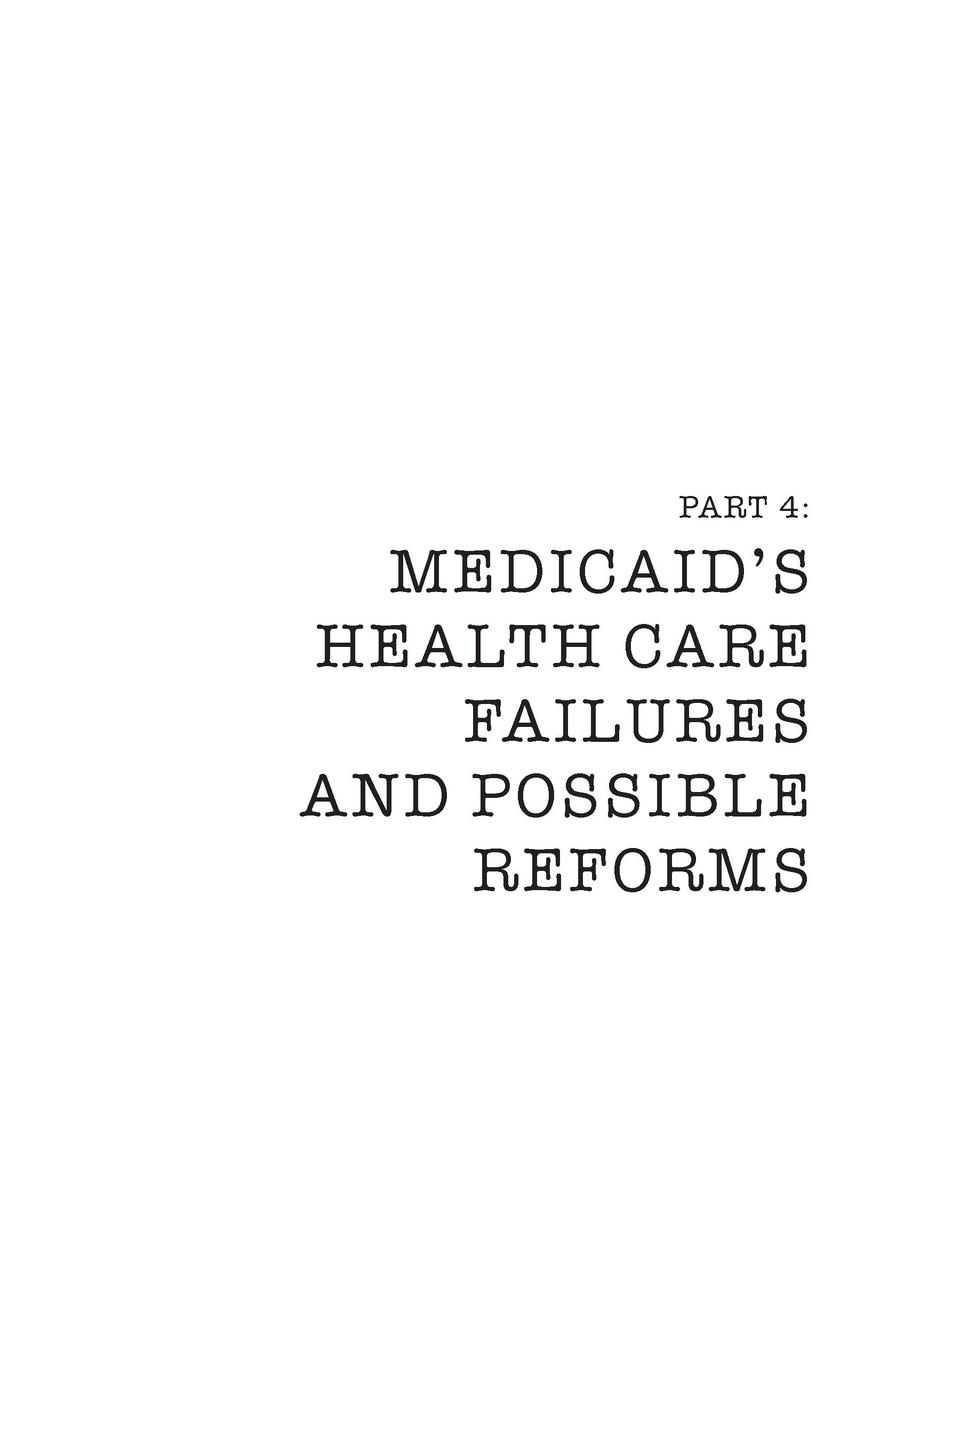 PART 4   MEDICAID   S HEALTH CARE FAILURES AND POSSIBLE REFORMS